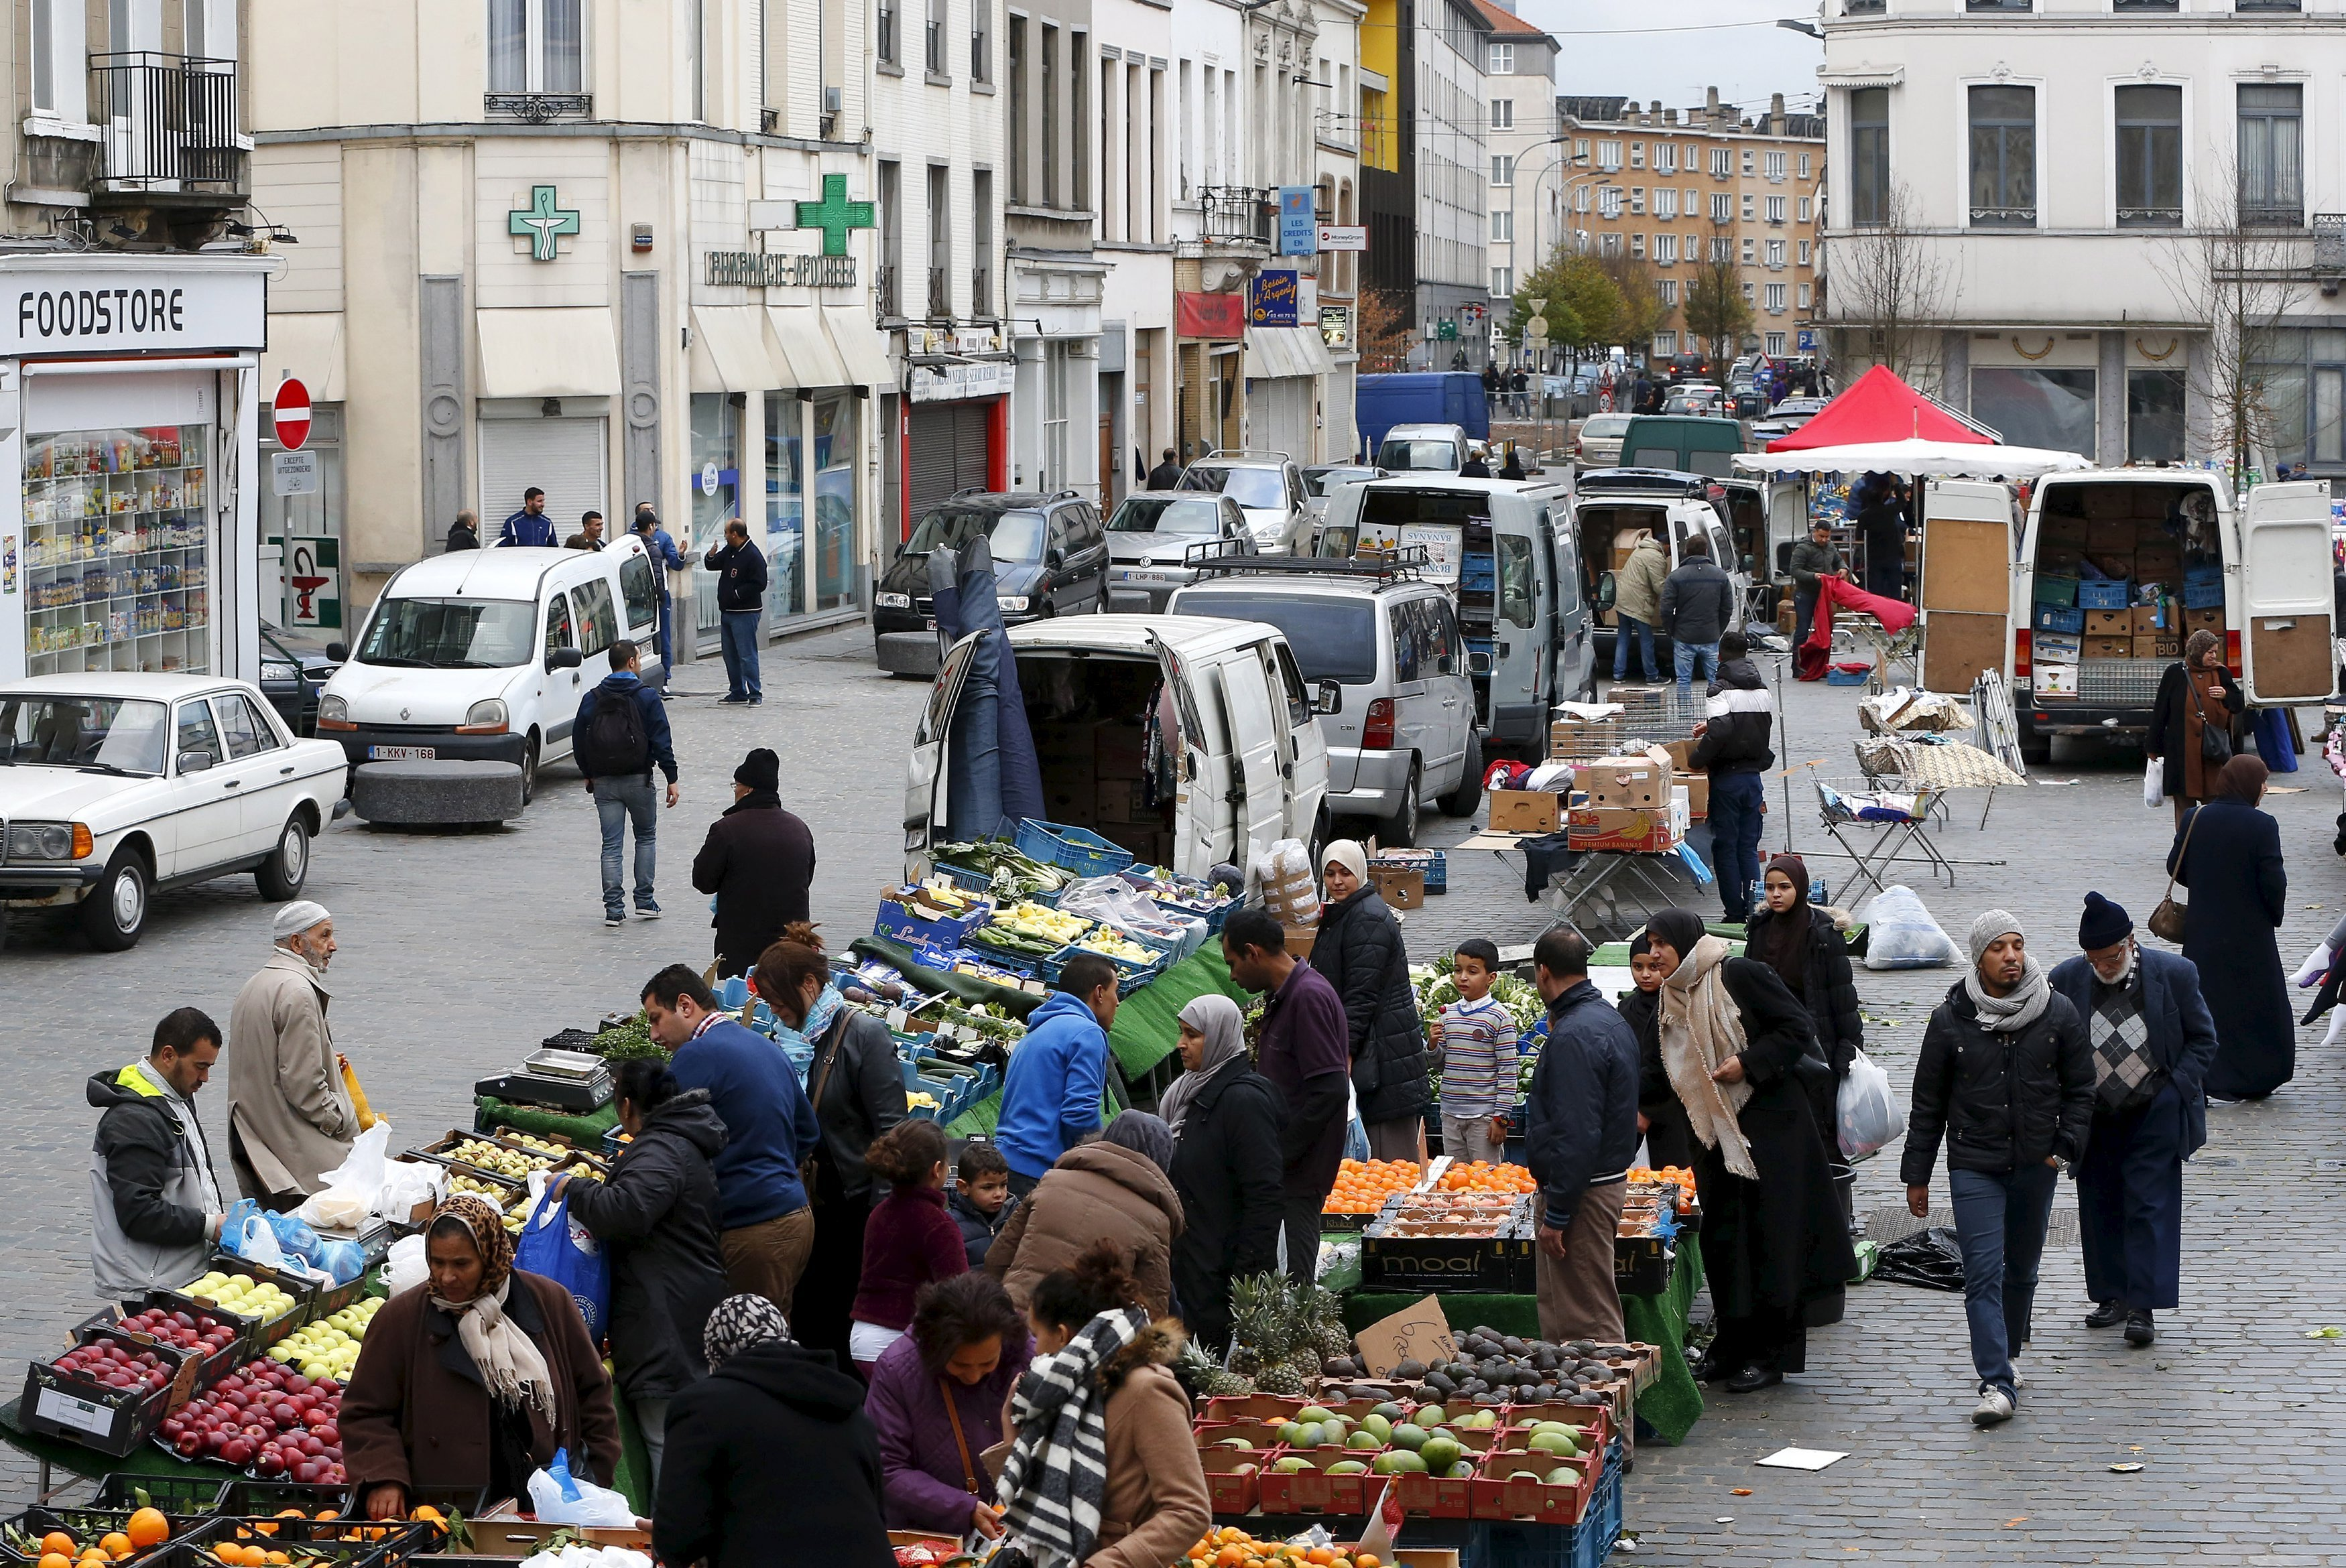 People shop at a market in the neighbourhood of Molenbeek, where Belgian police staged a raid following the attacks in Paris, at Brussels, Belgium November 15, 2015